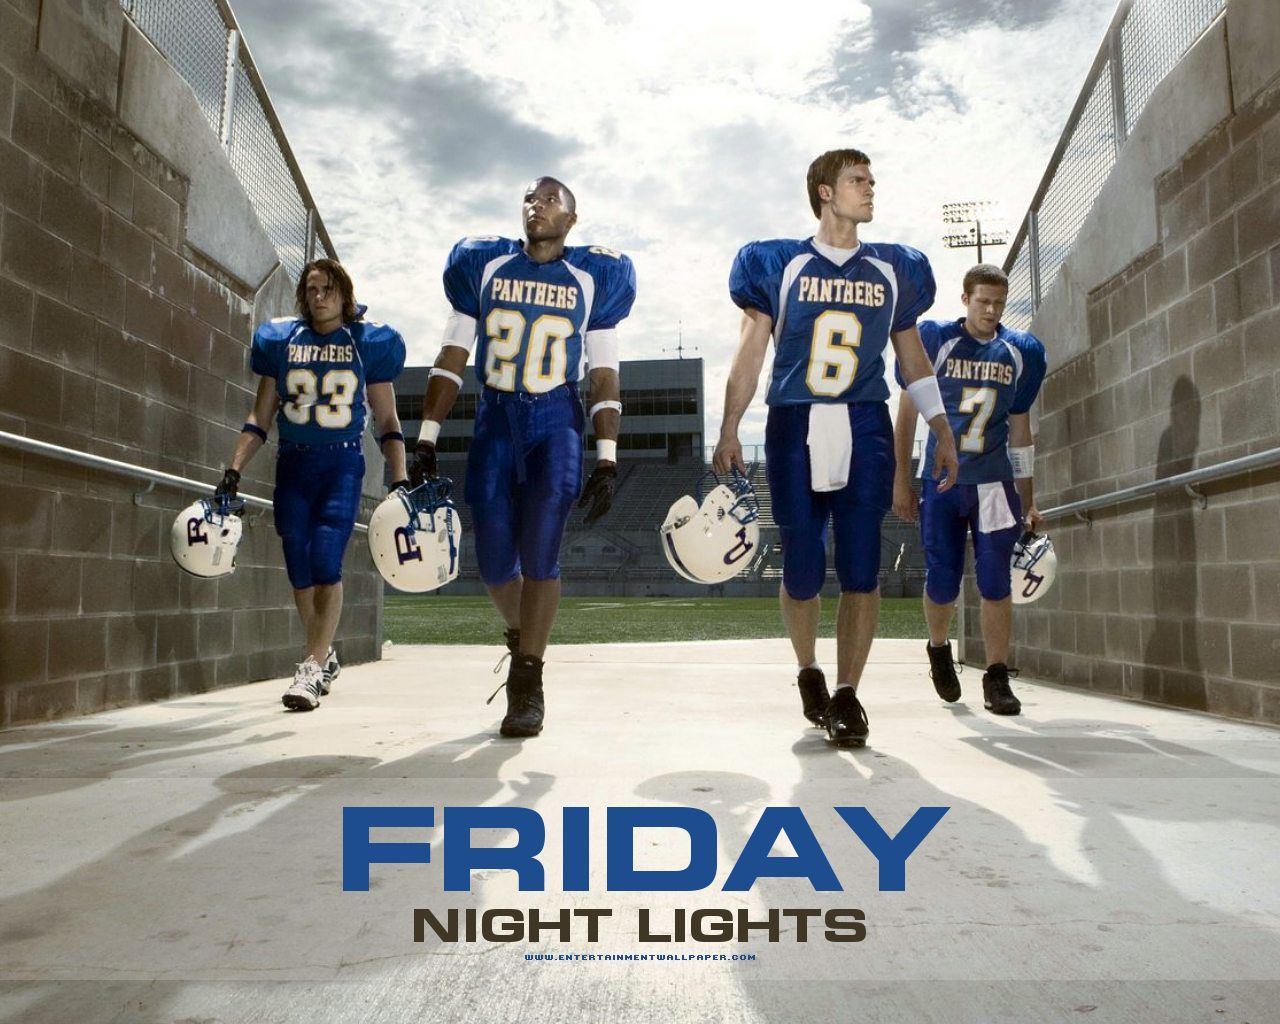 Pin by HEARTIMALS® on TV & MOVIES Friday night lights